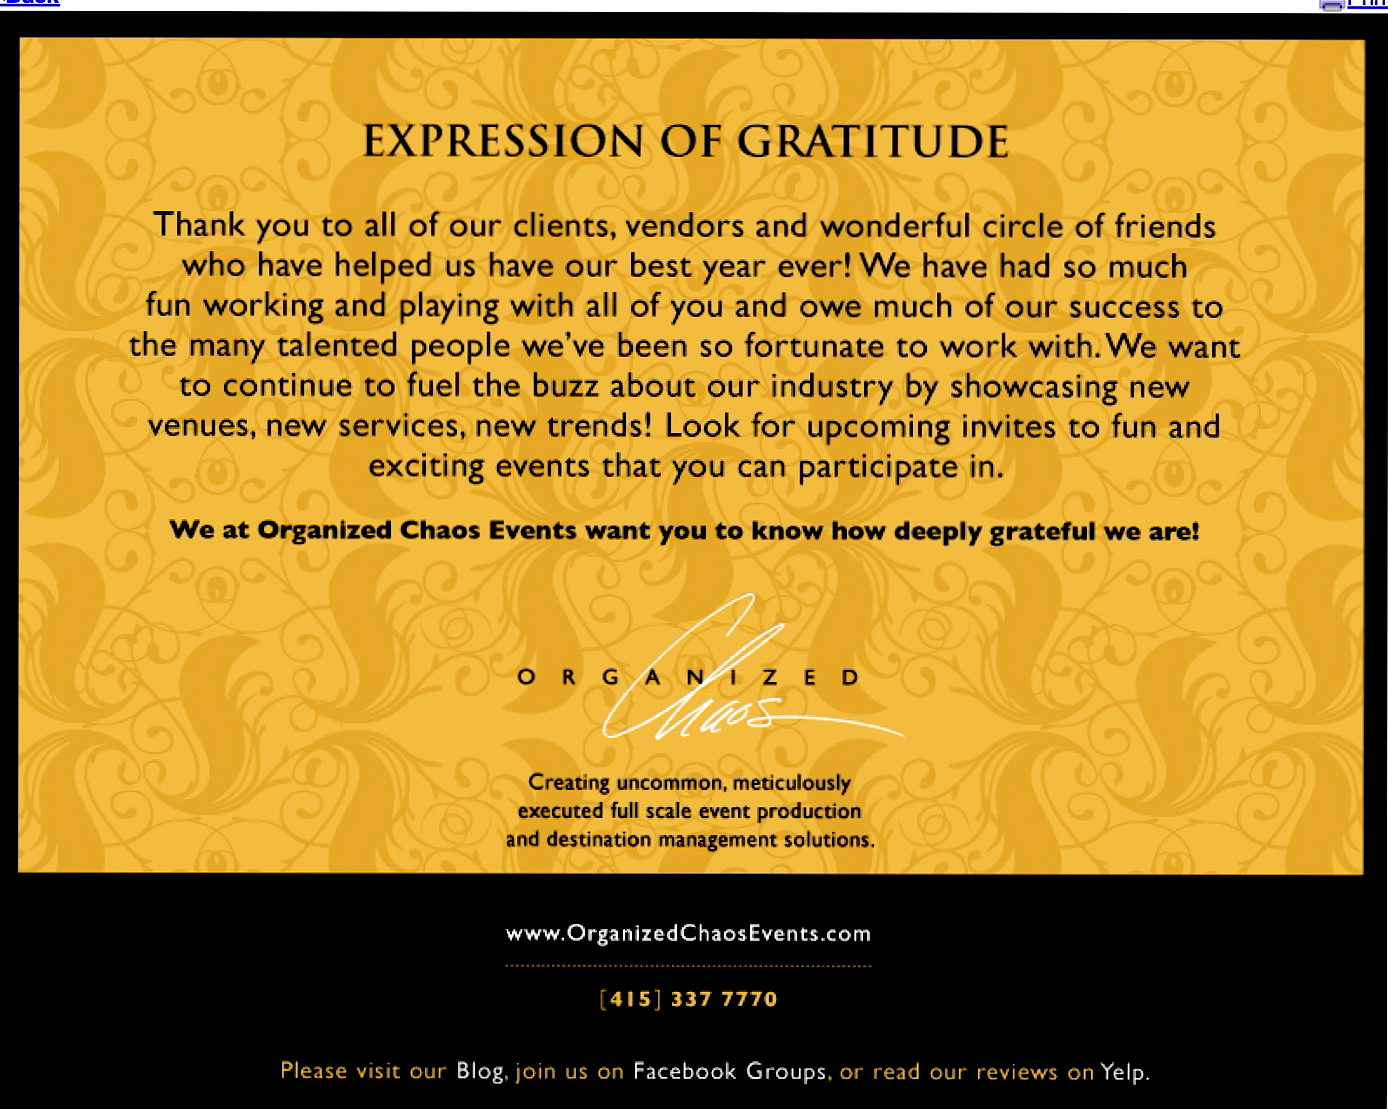 Thank You from Organized Chaos Events